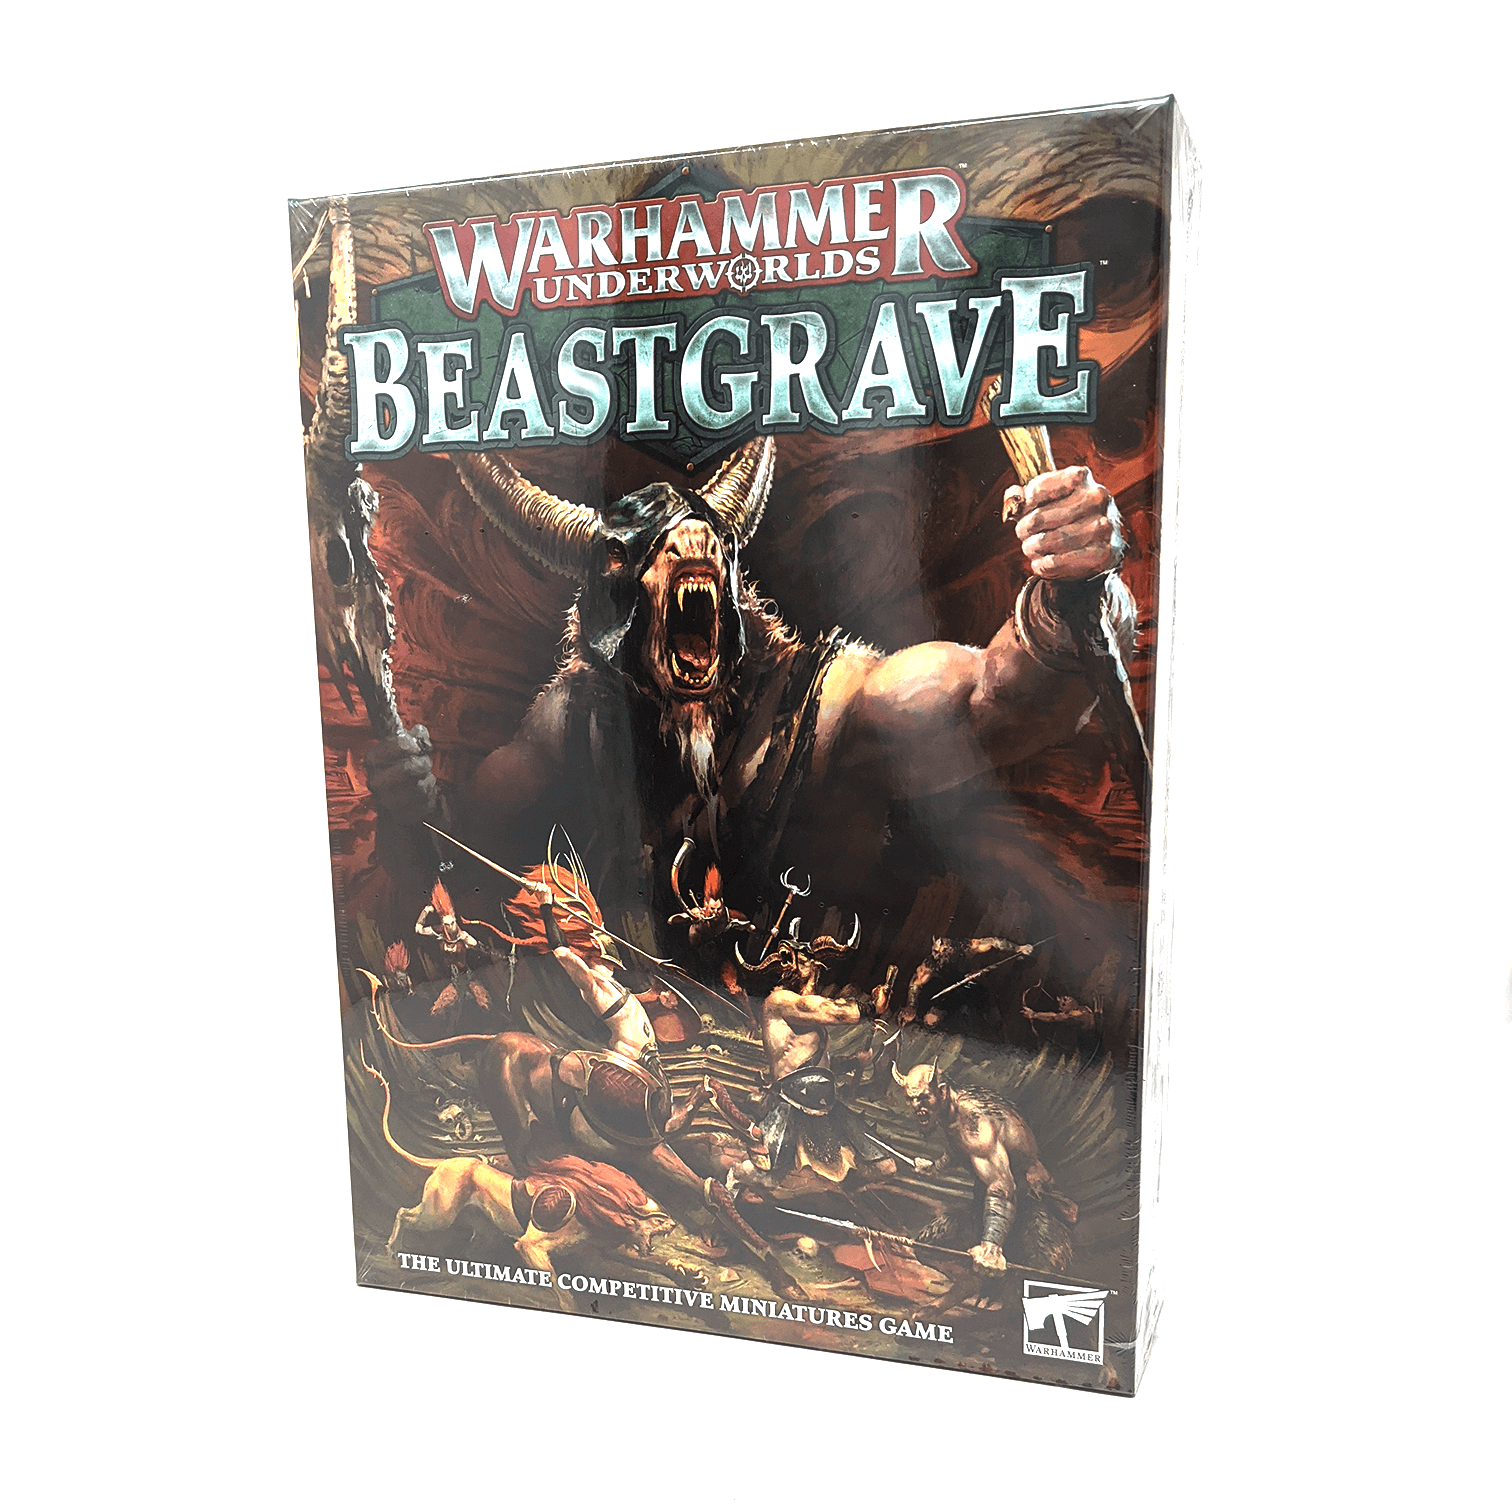 Warhammer Underworlds: Beastgrave box front: The Ultimate Competitive Miniatures game: demons fight in a cave corridor